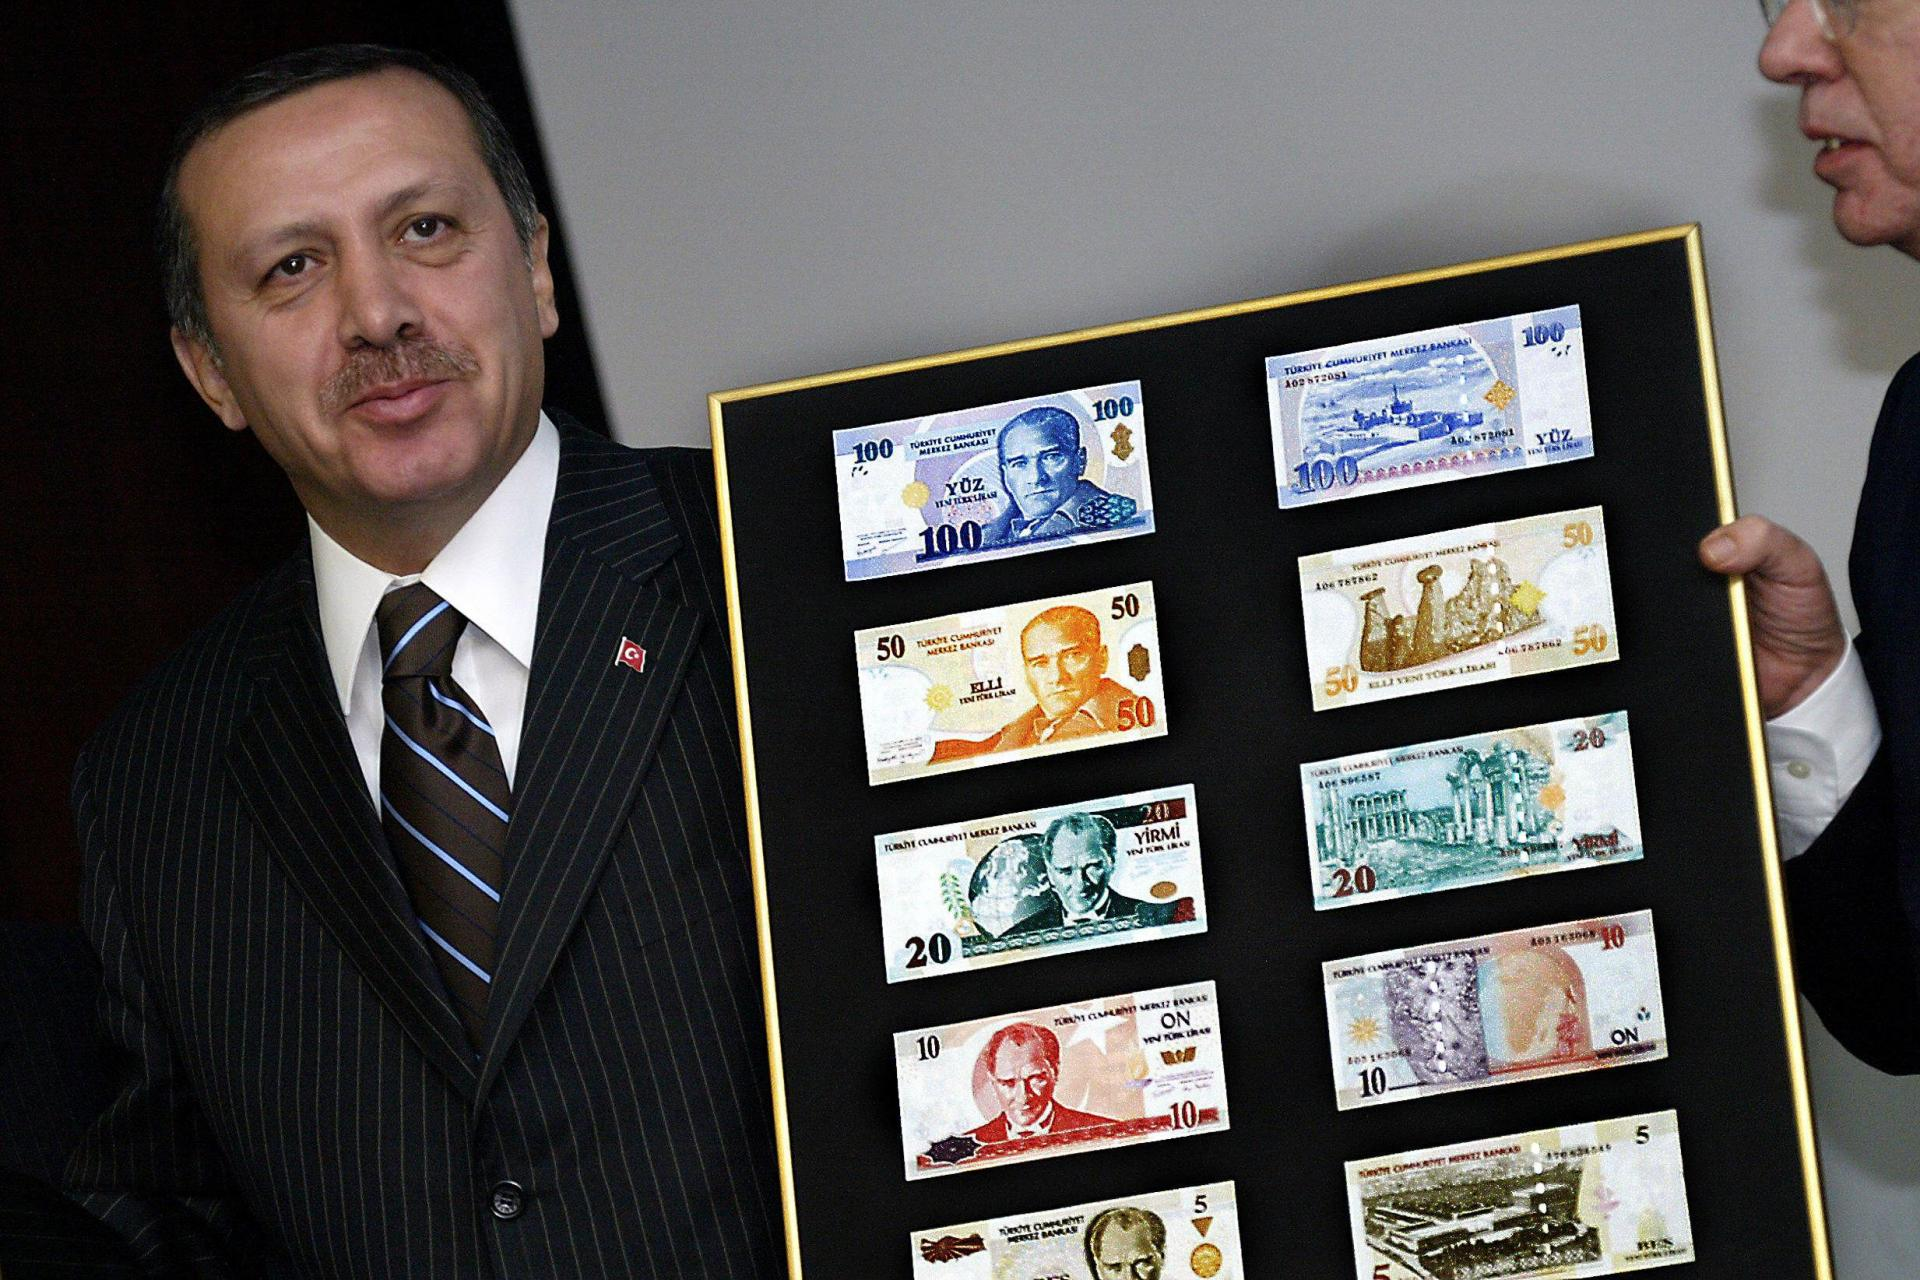 Mr Erdogan poses with new Turkish lira banknotes back in 2004. Photo: AFP